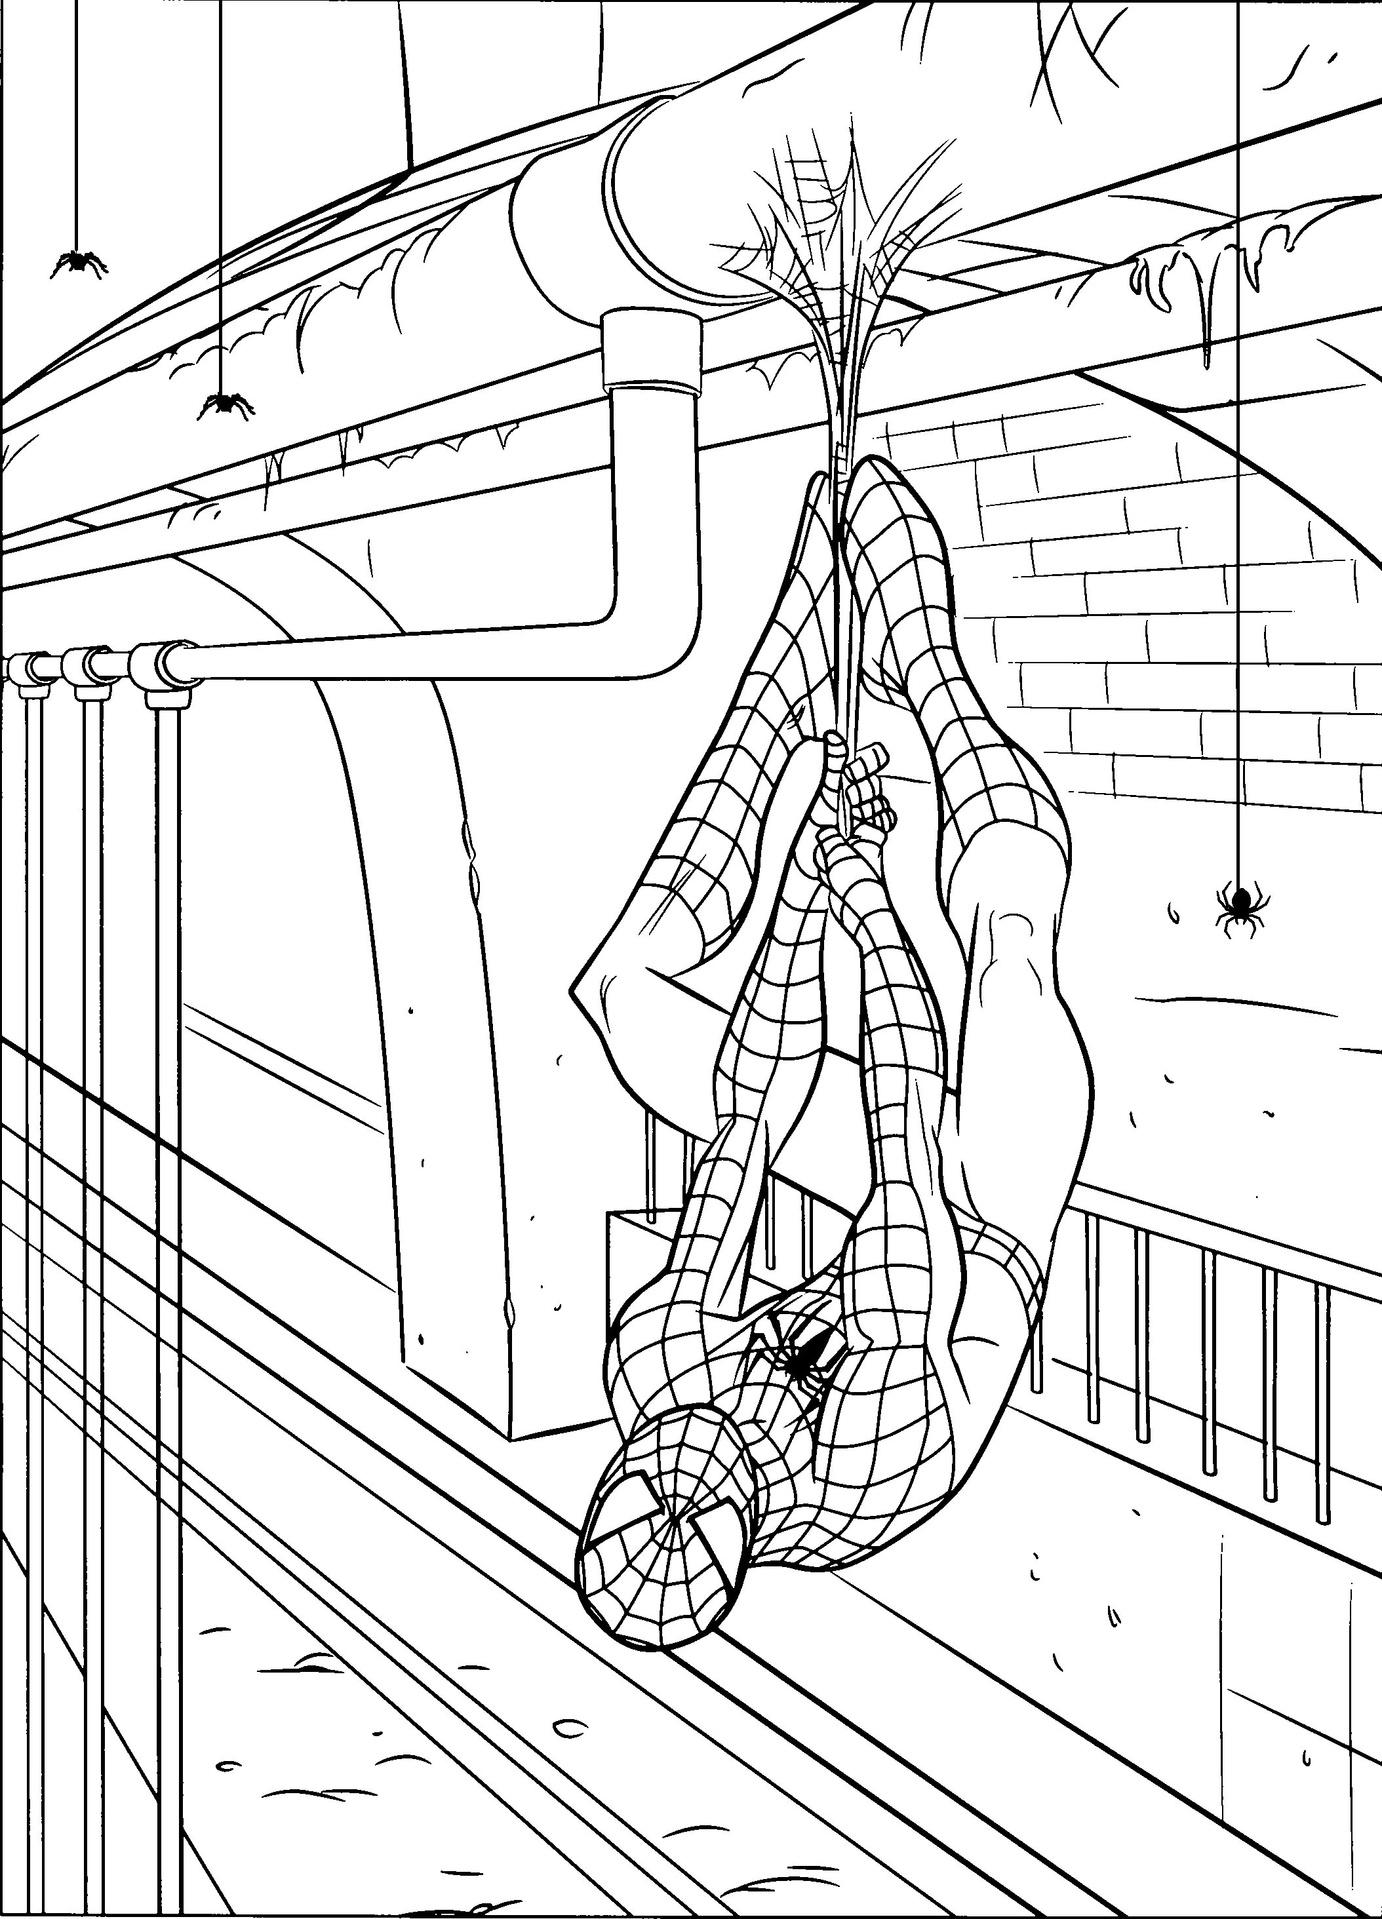 Spiderman 3 coloring pages - Free Spiderman Coloring Pages